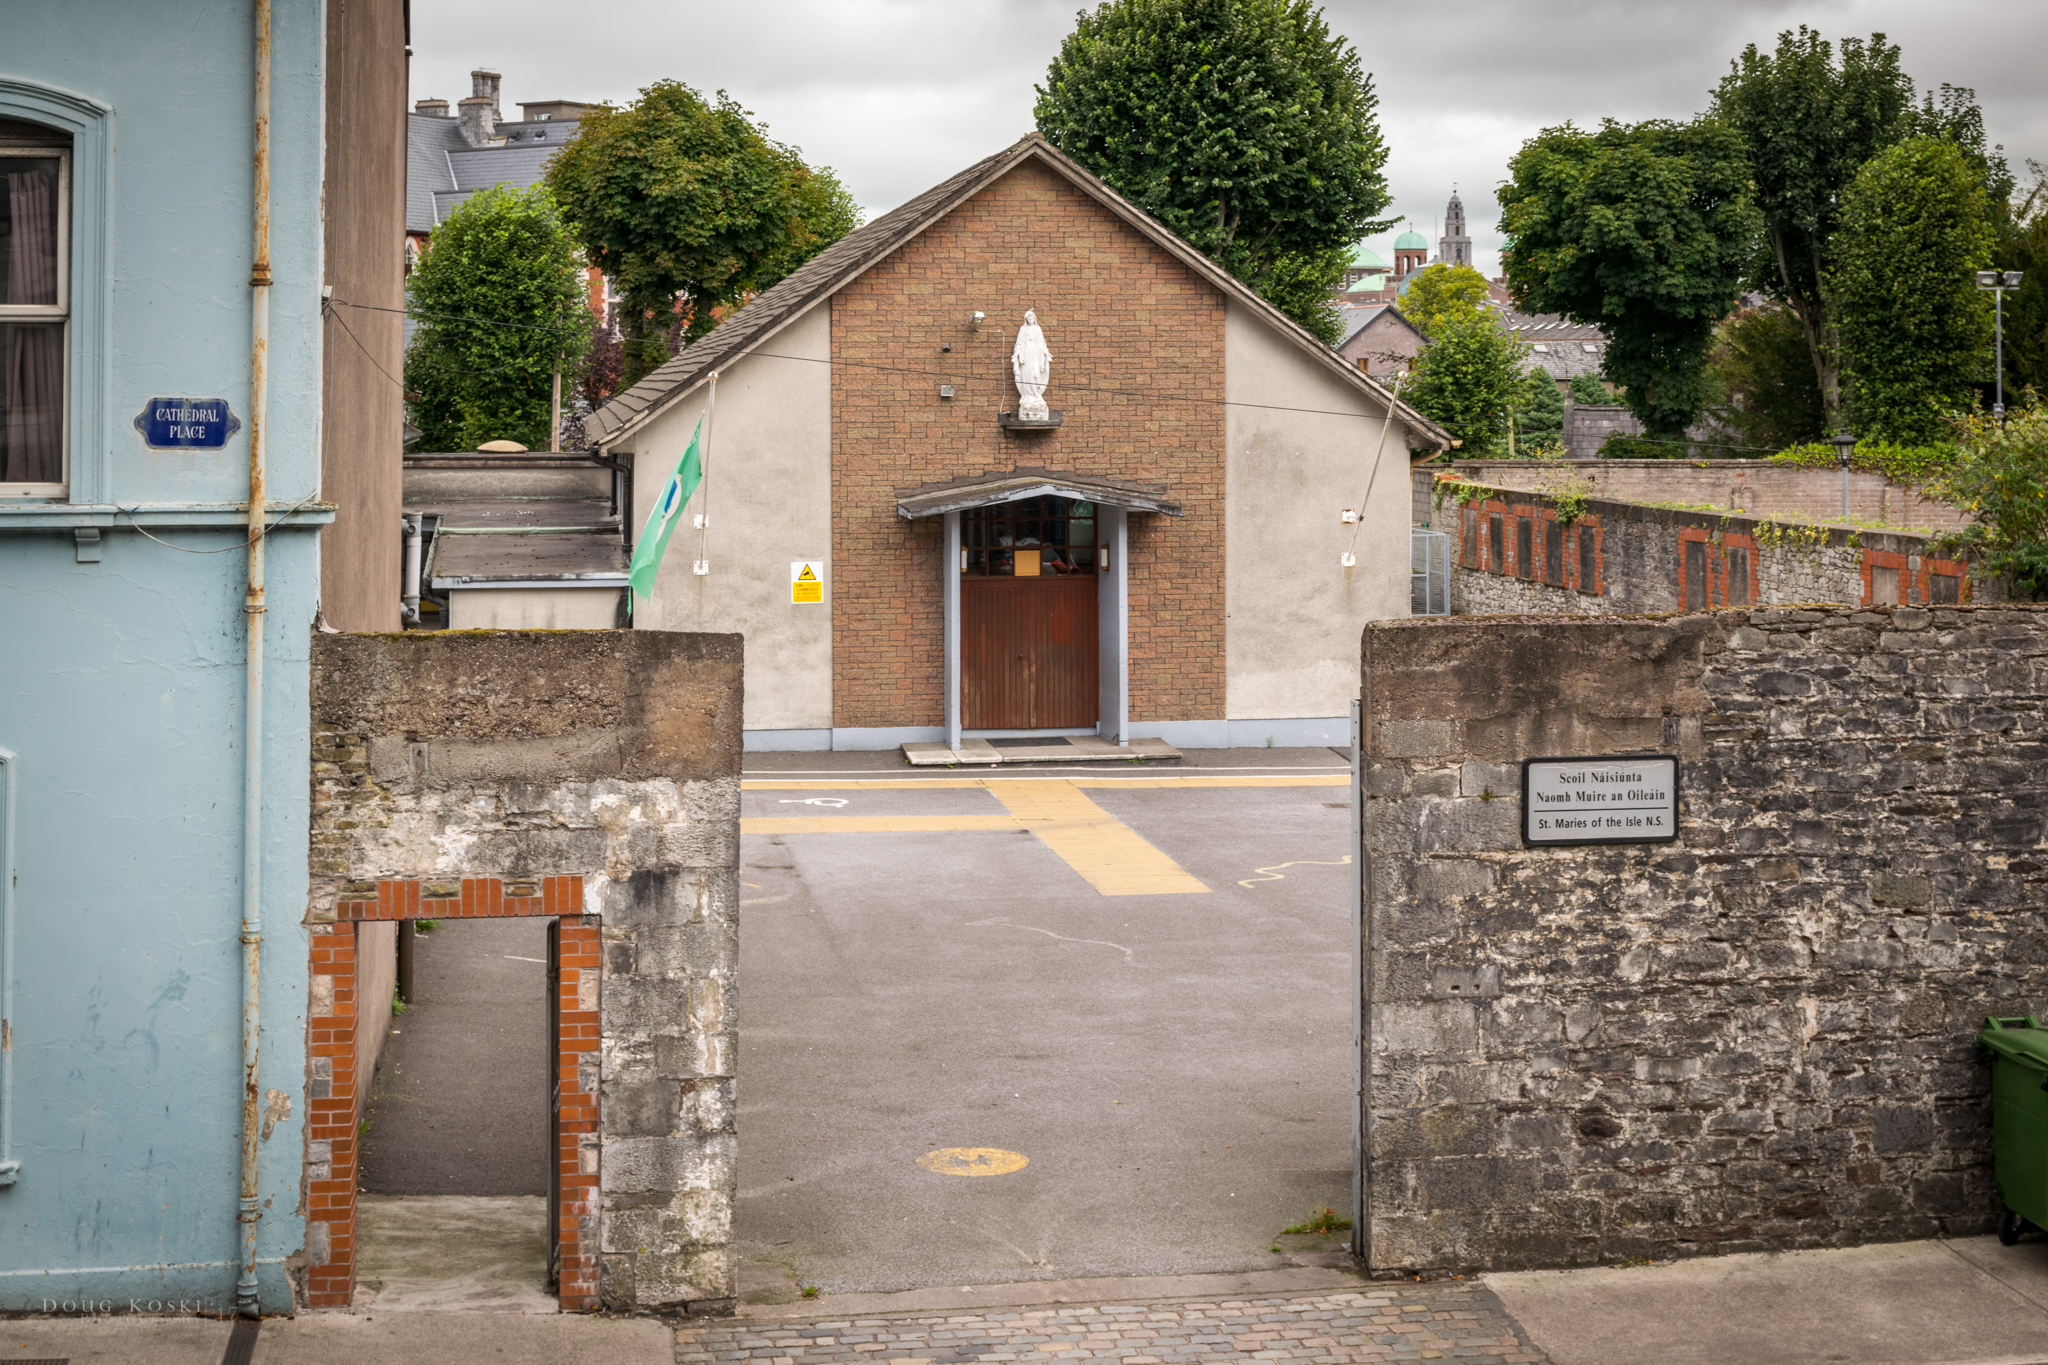 Alma Mater - This was Sinéad's old school, back in the day. It was also right across the street from the church.